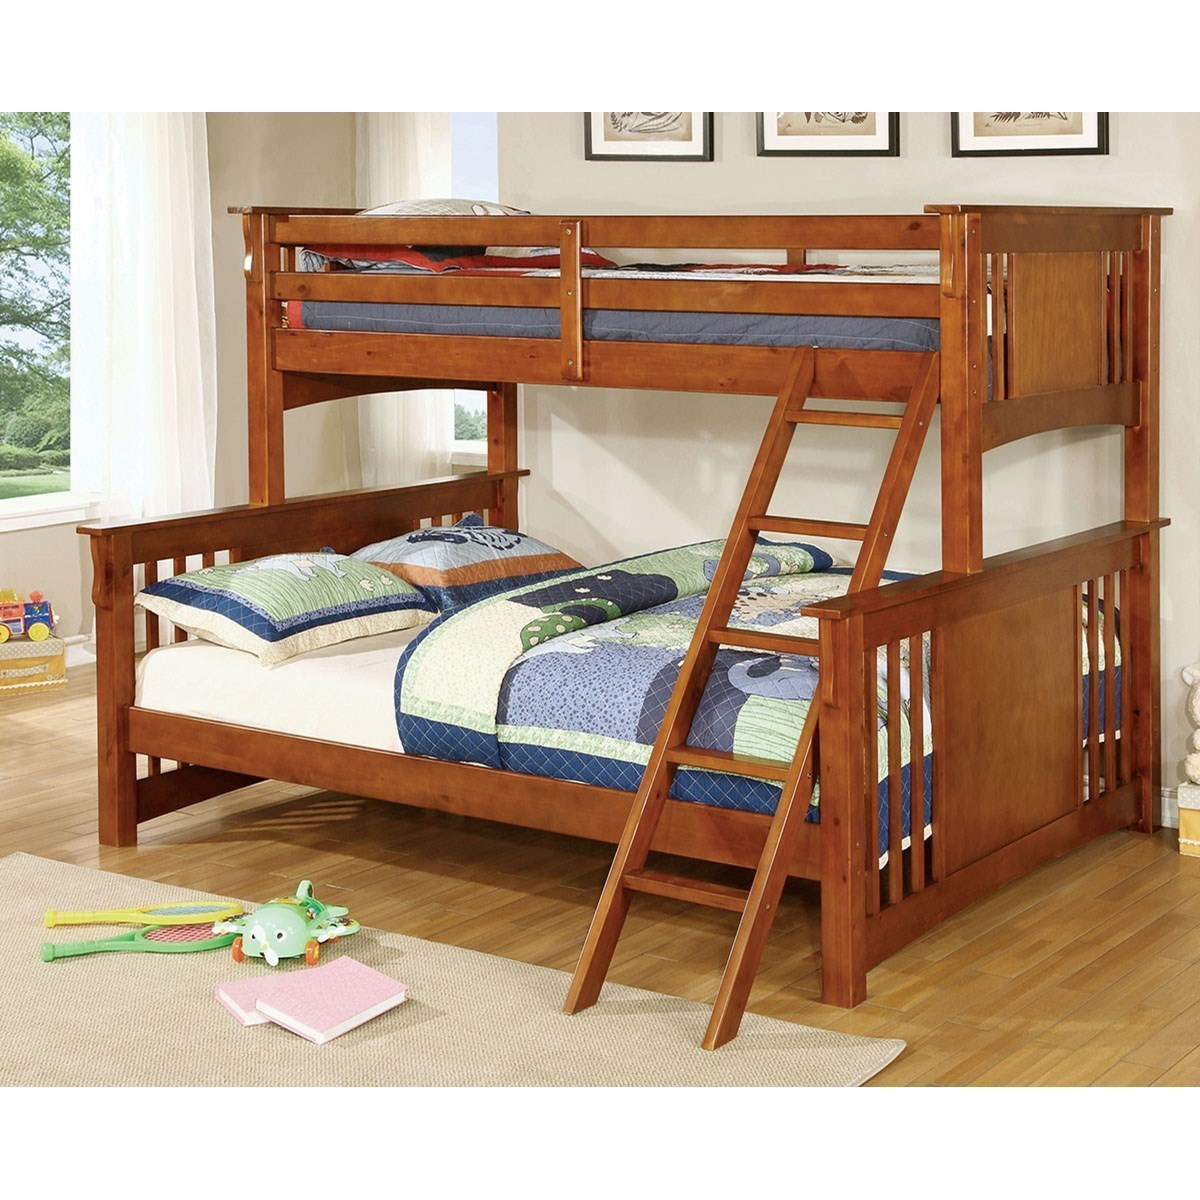 Superieur Furniture Of America Spring Creek Twin XL/Queen Bunk Bed *Bunkie Board  Required